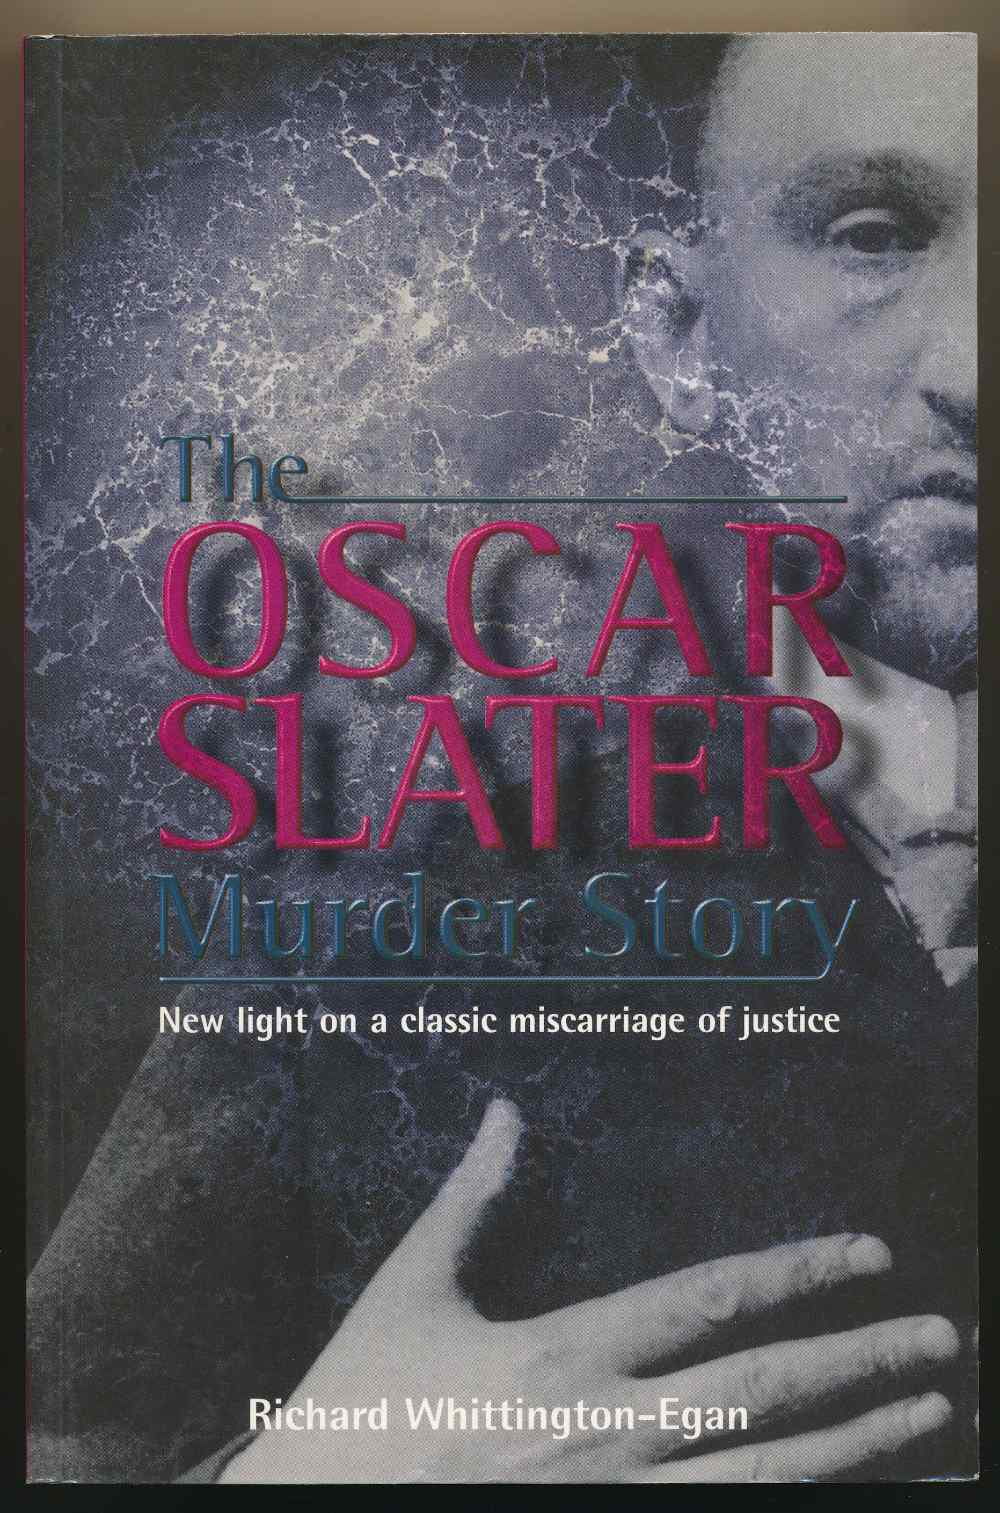 The Oscar Slater murder story : new light on a classic miscarriage of justice